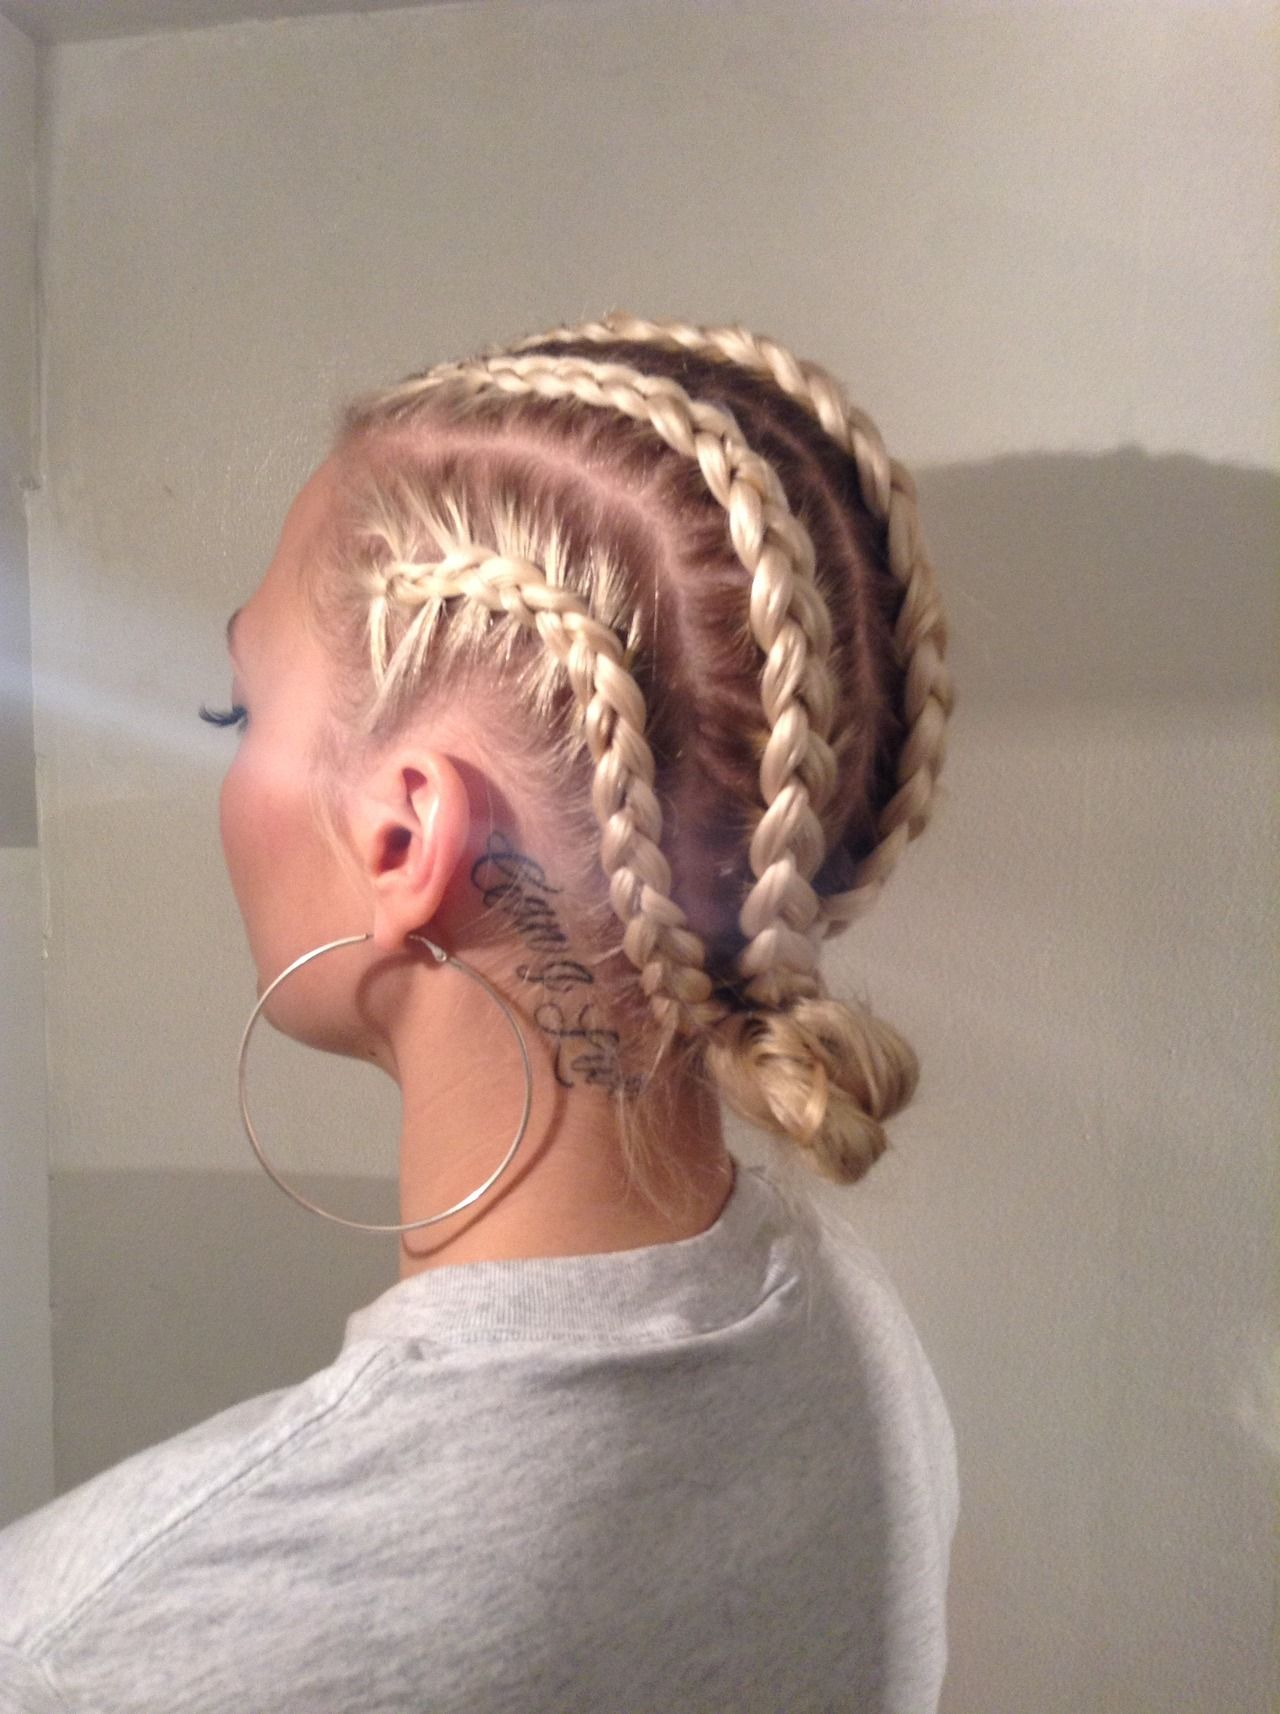 blonde cornrows and tattoos #tomboystyle #tomboy #cornrows